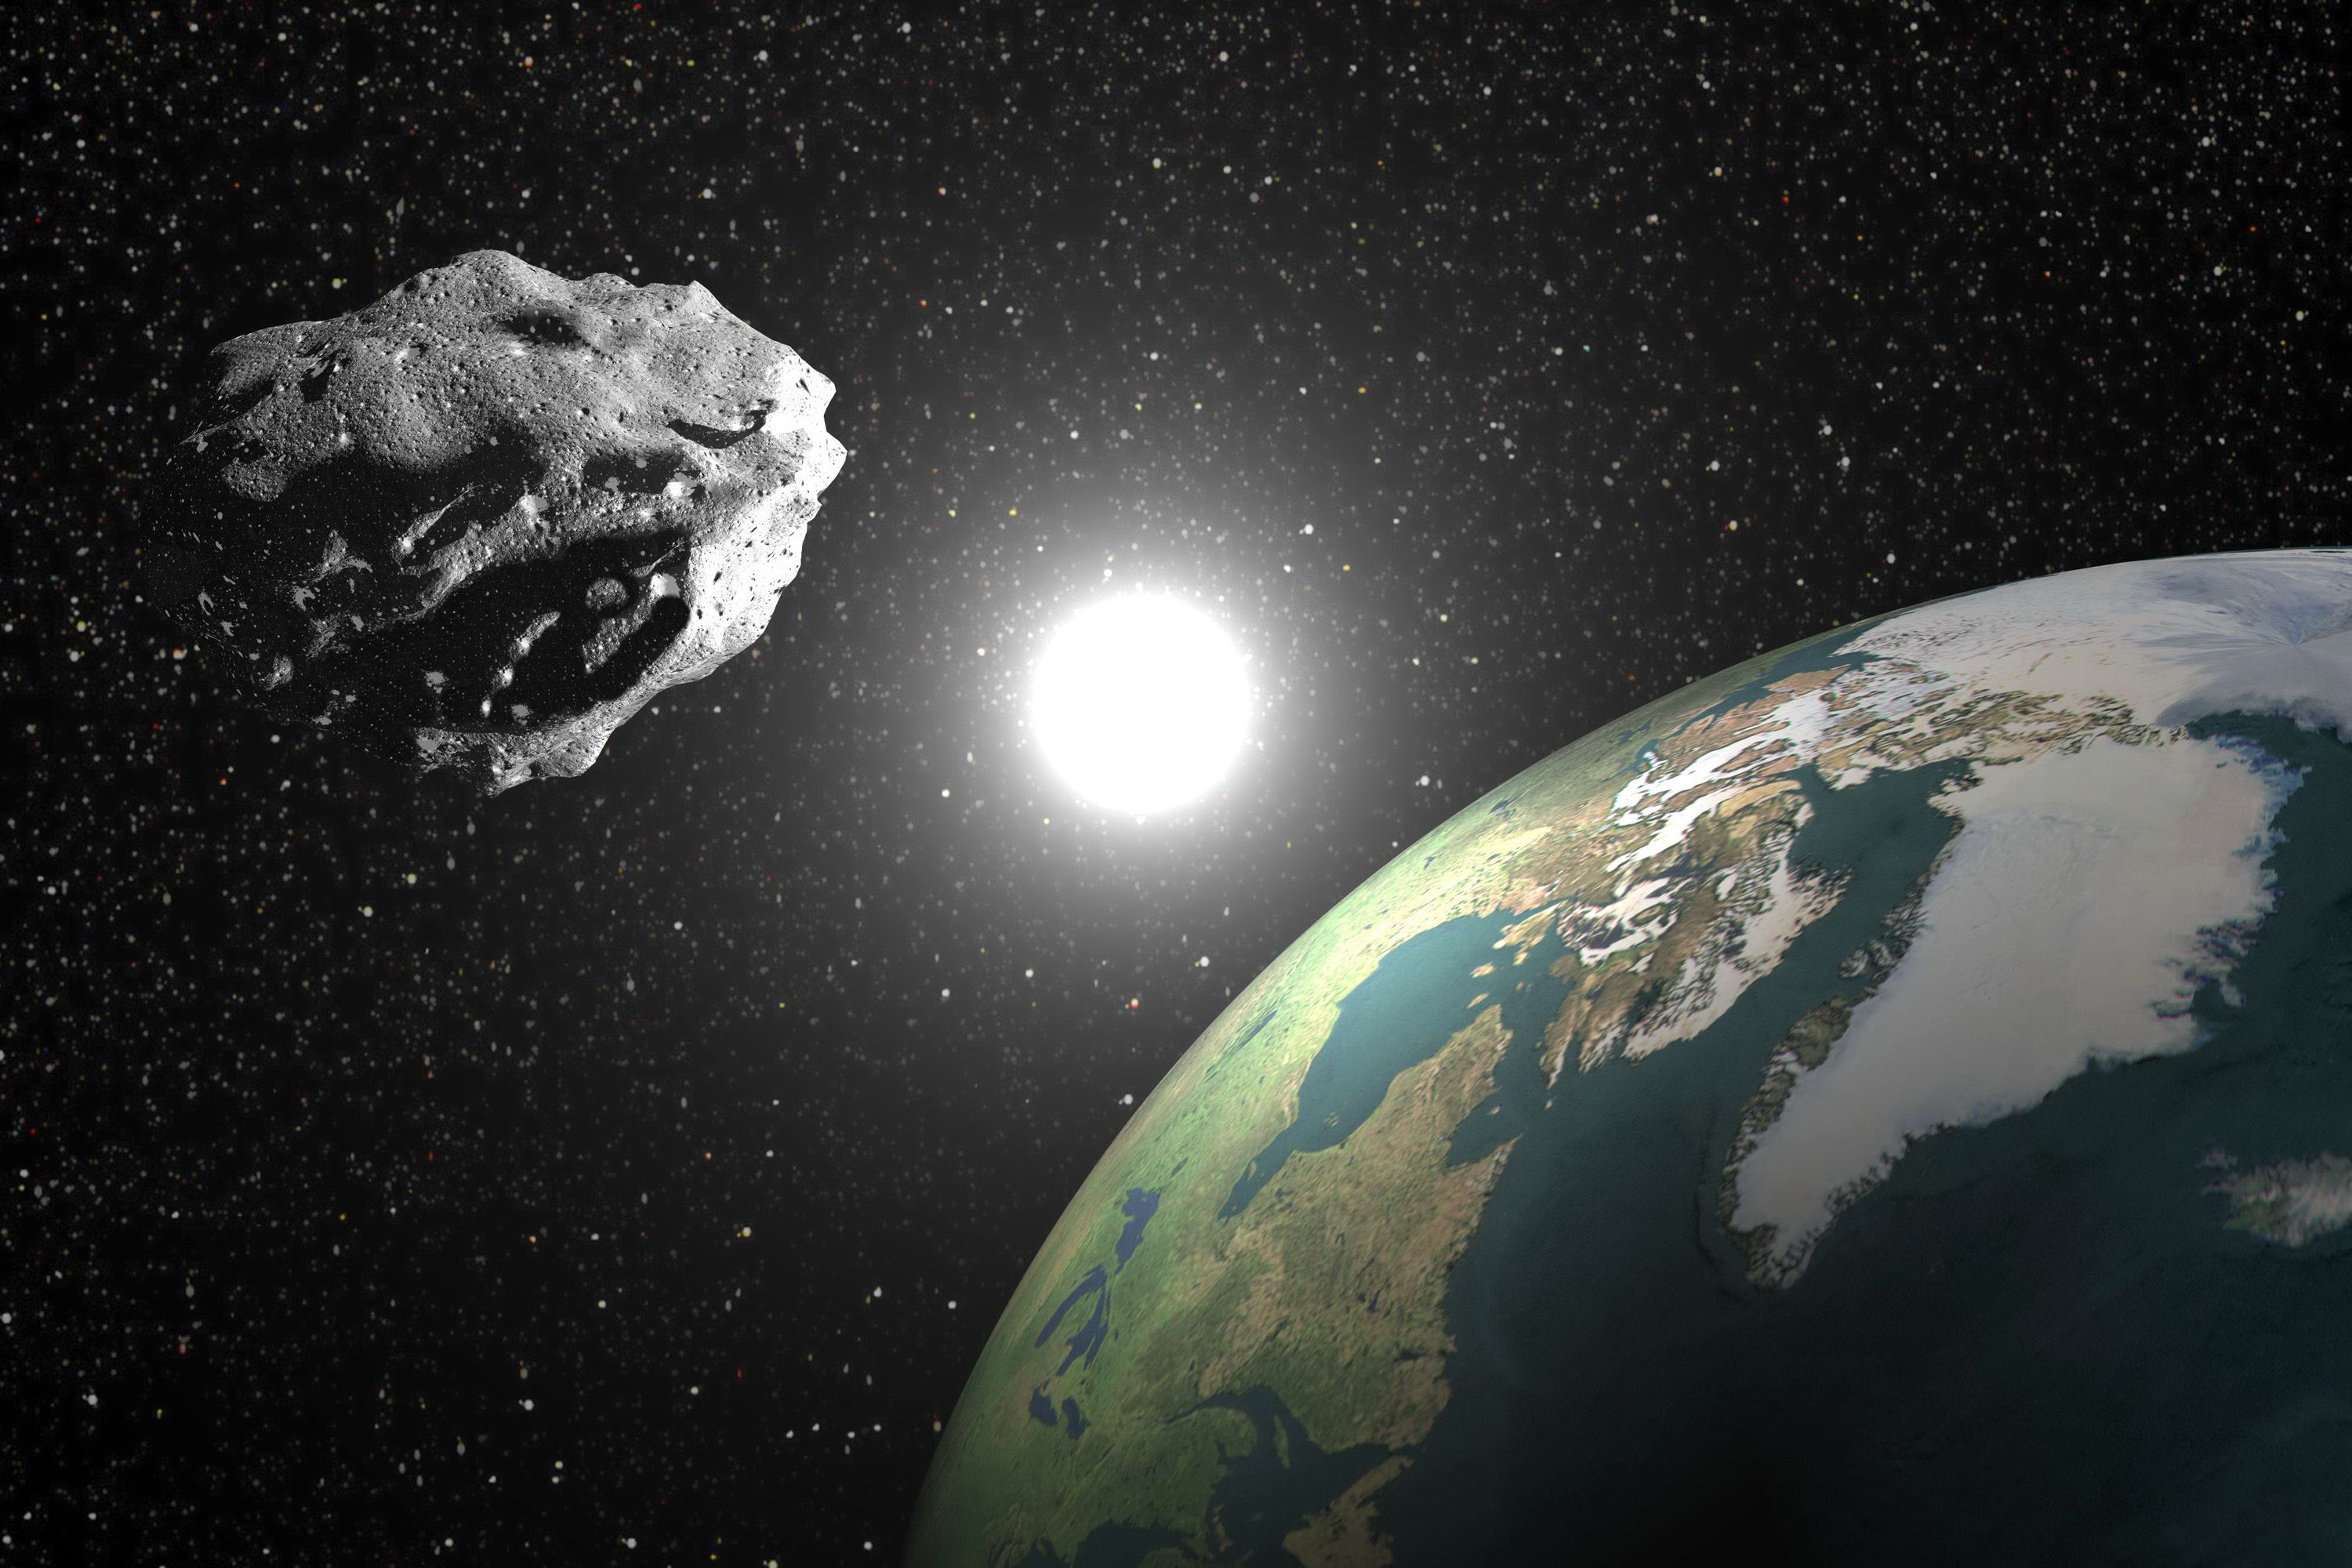 asteroid flew closer to earth